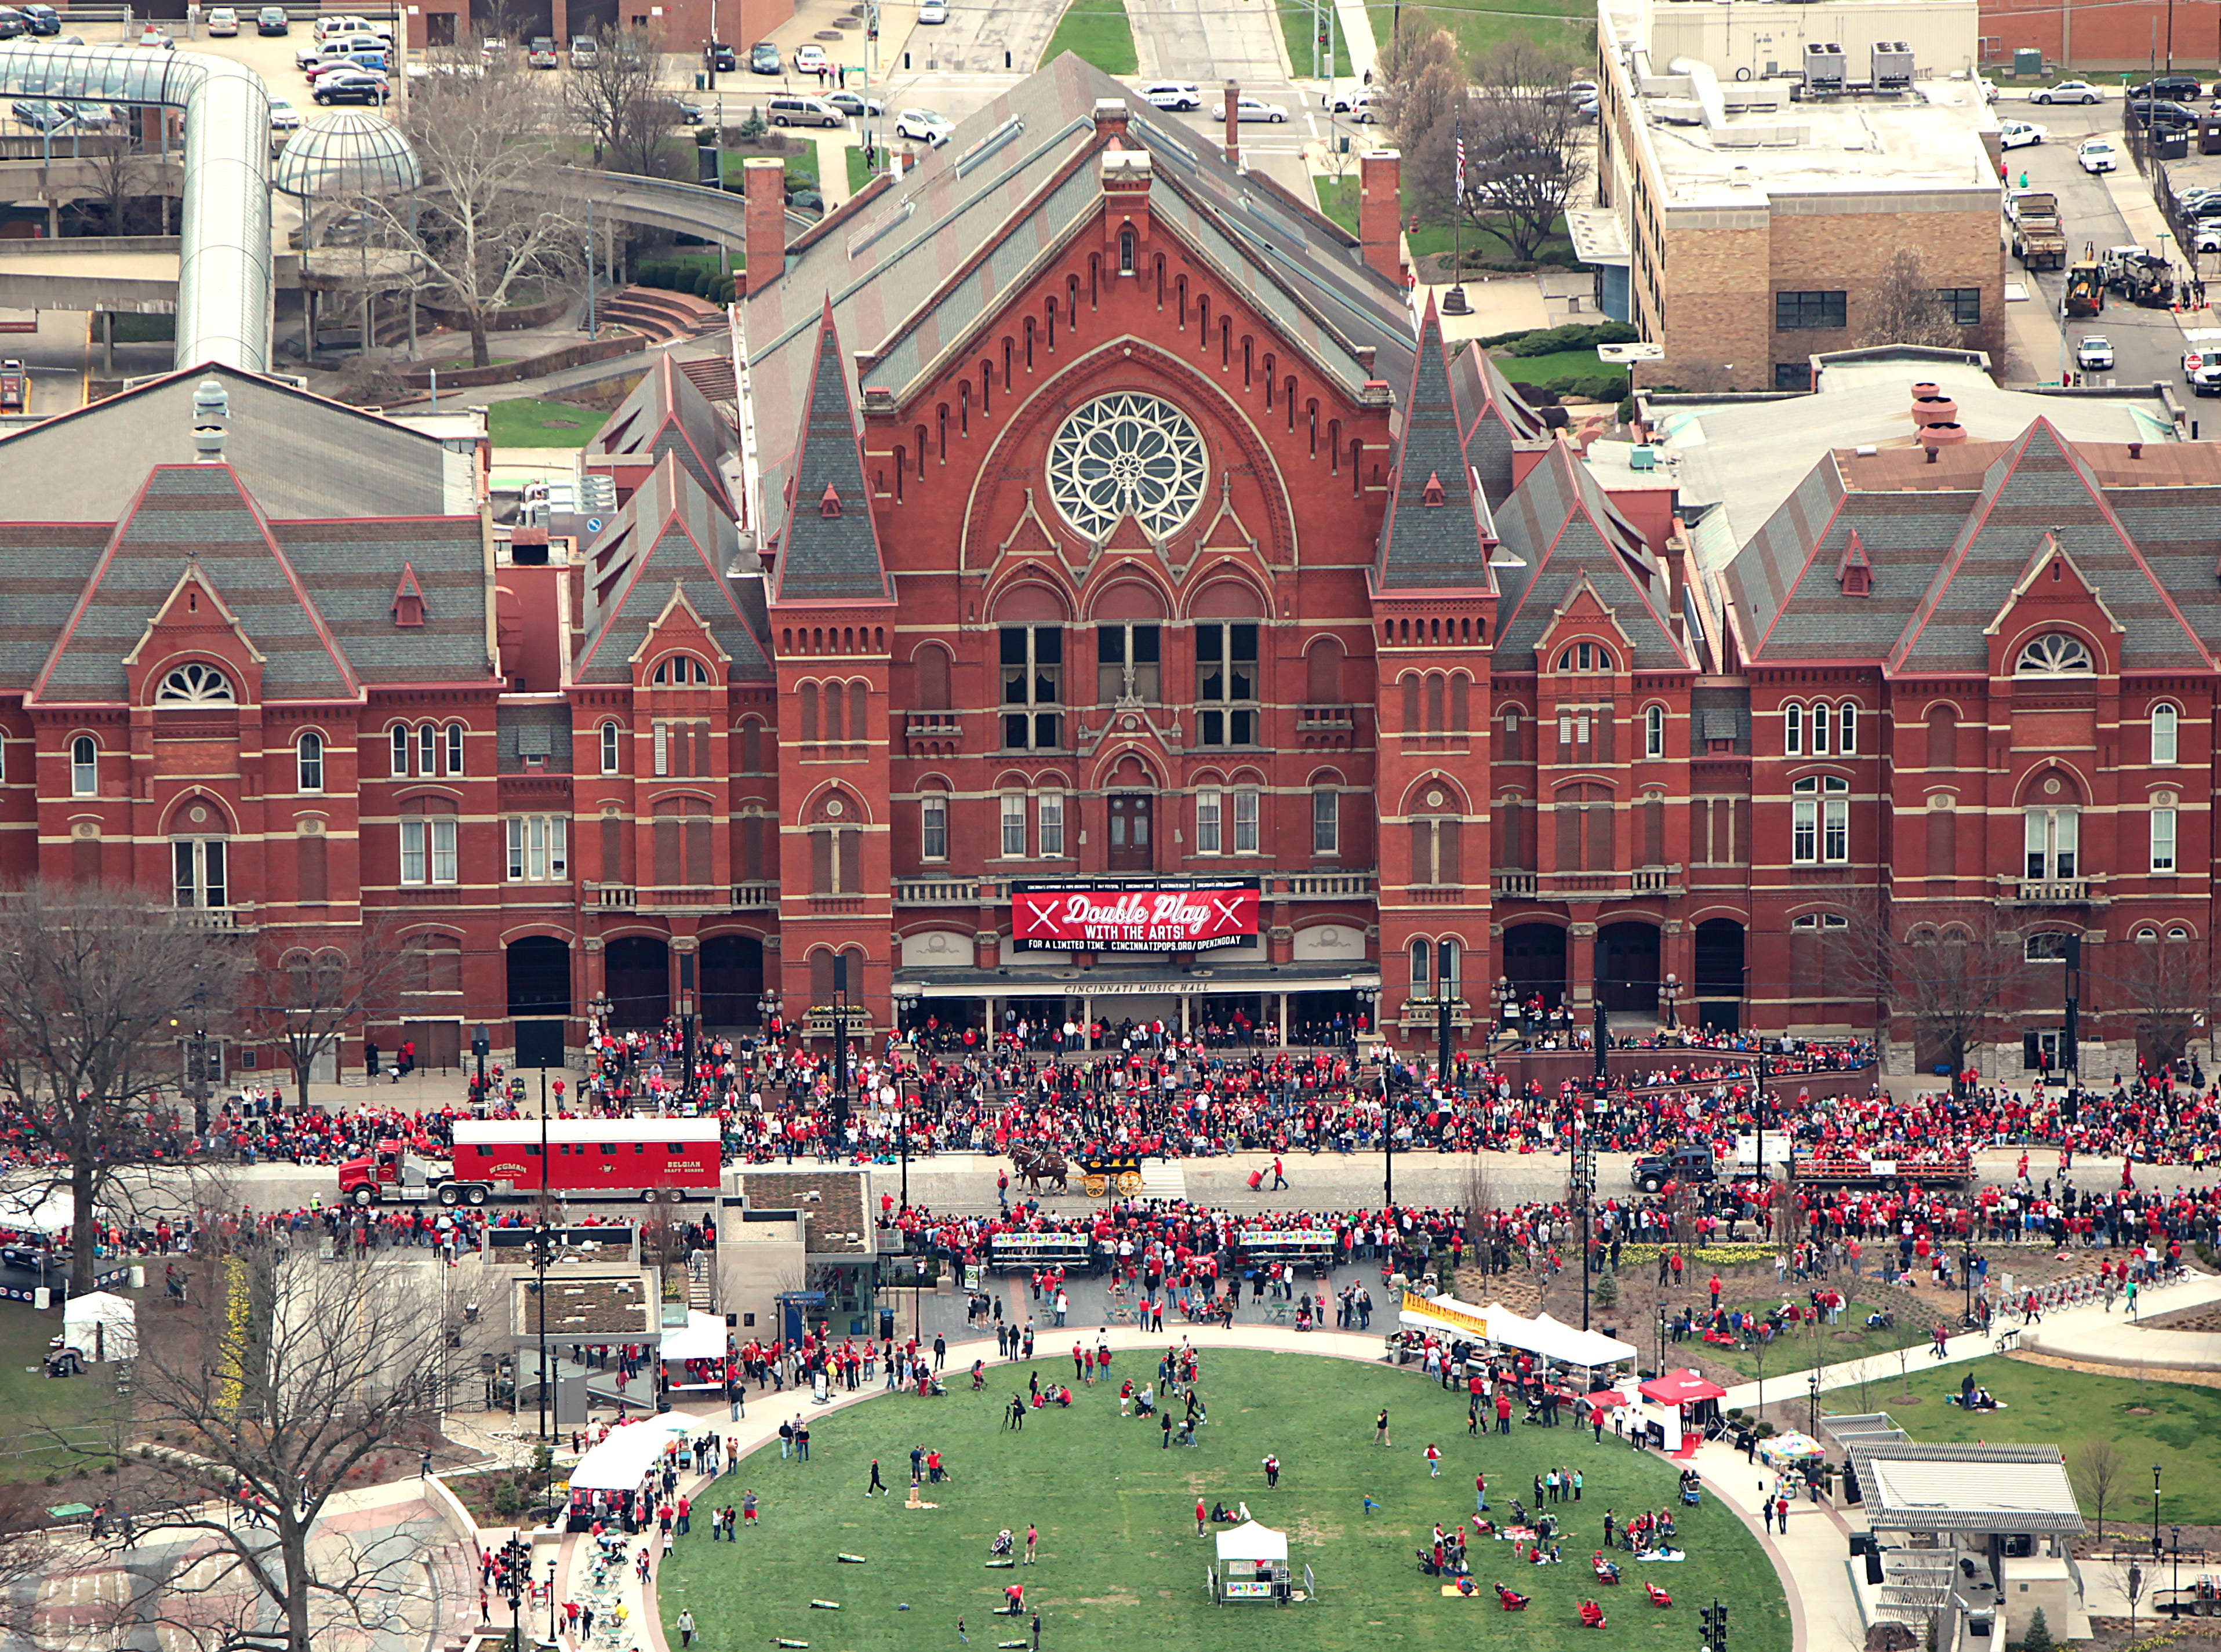 April 6, 2015: Crowds gather Monday in Washington Park near Music Hall for the Opening Day parade. The Enquirer/Cameron Knight